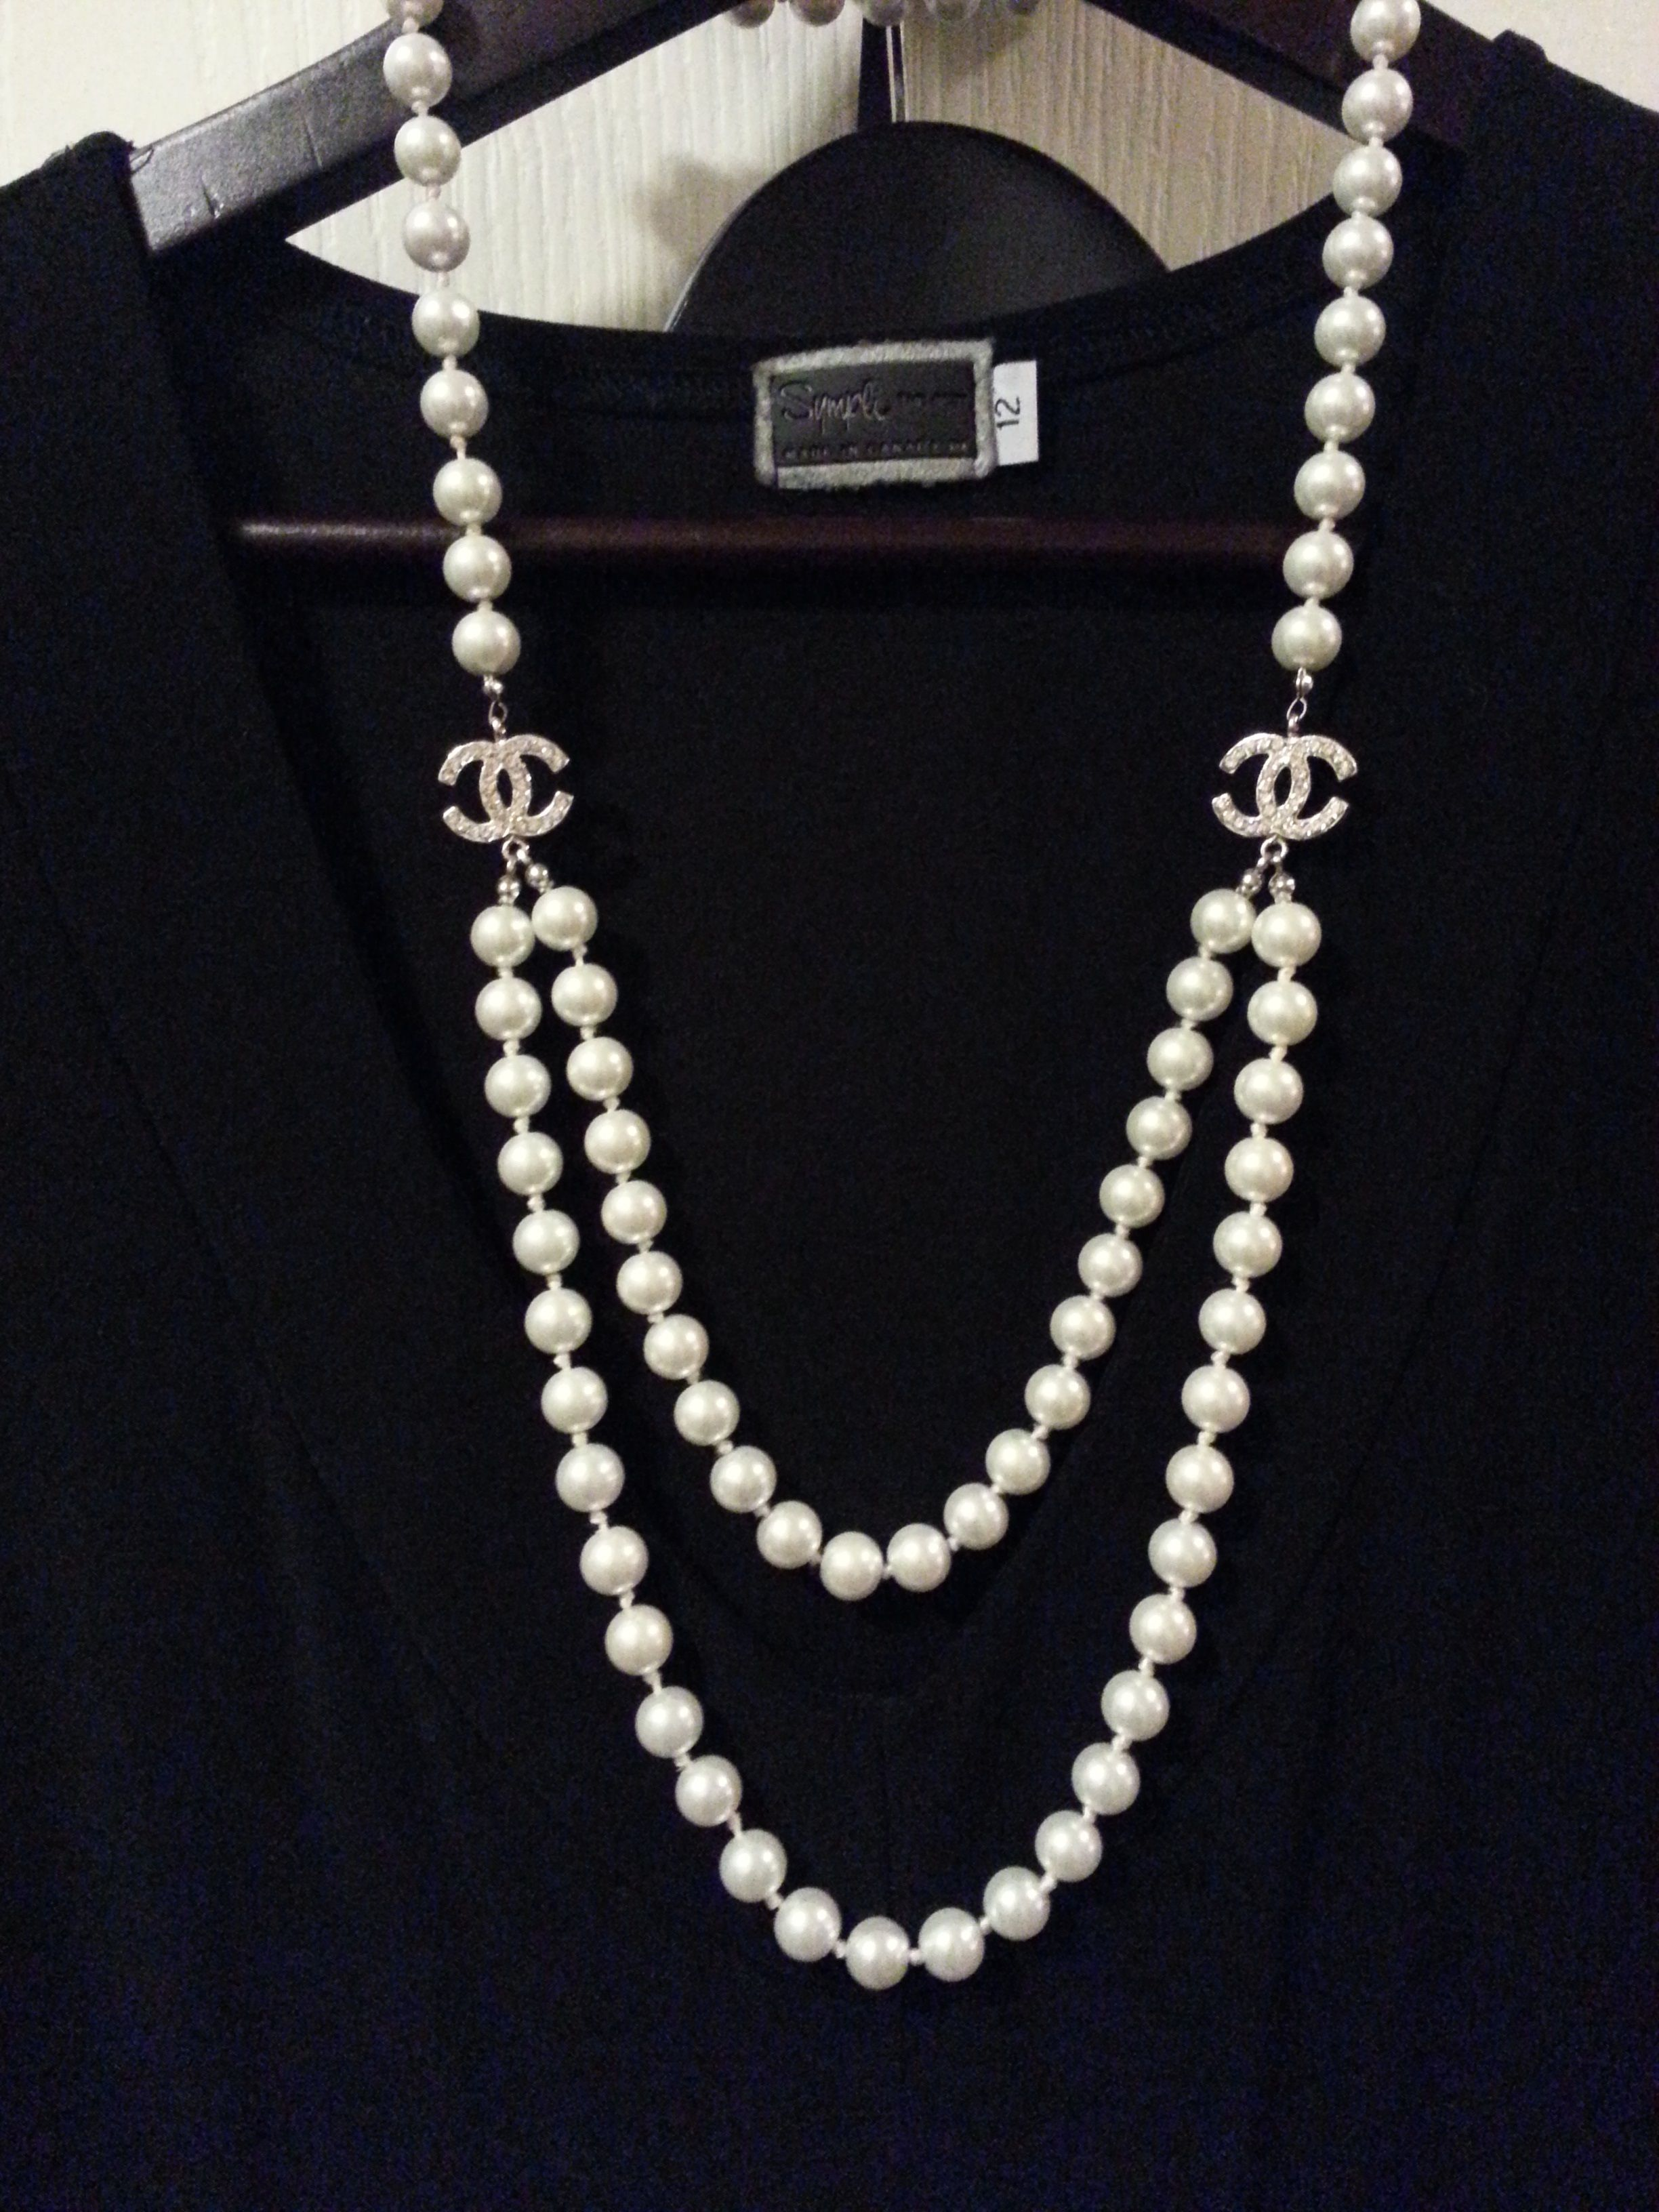 fashions for the classy lady 40 my own collection vintage chanel necklace brand chanel. Black Bedroom Furniture Sets. Home Design Ideas